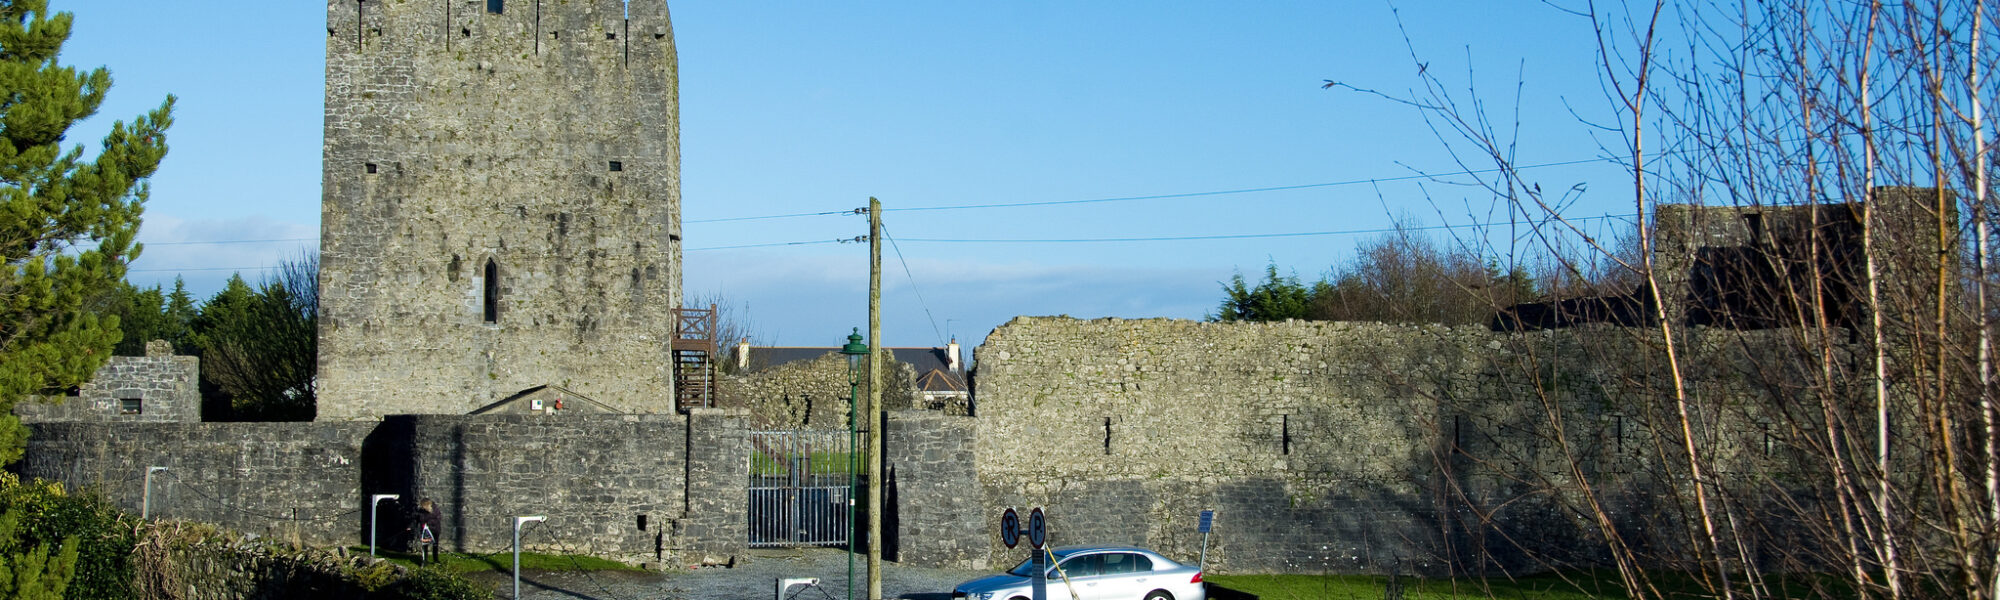 Athenry Castle - Conor Lawless - cc